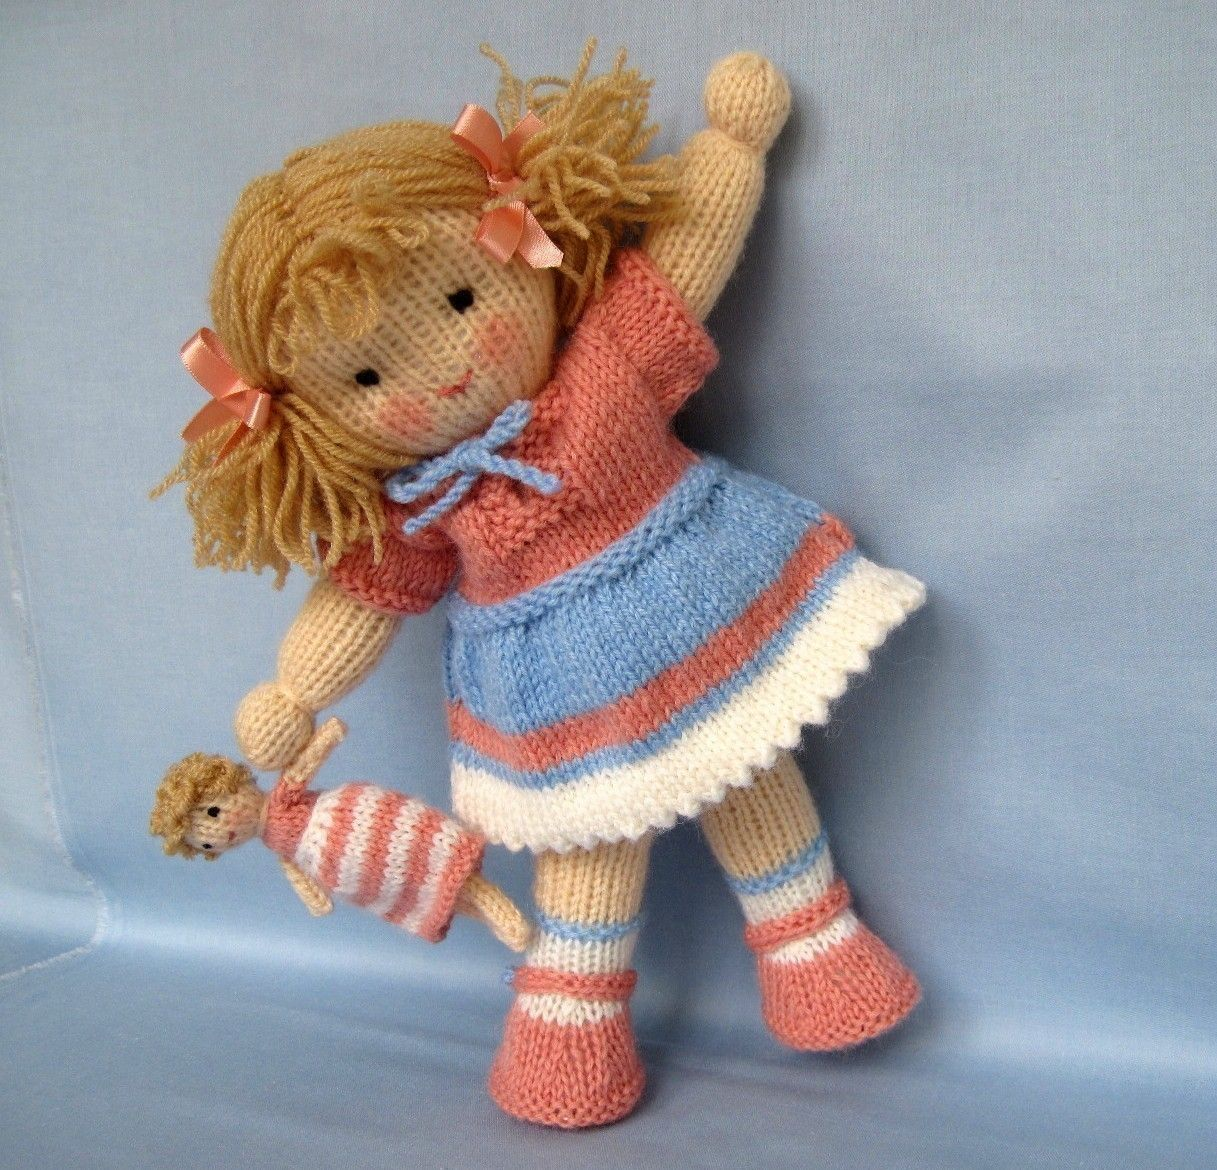 Free Toy Knitting Patterns Only : Lulu and little doll knitting pattern - INSTANT DOWNLOAD Knitting patterns,...